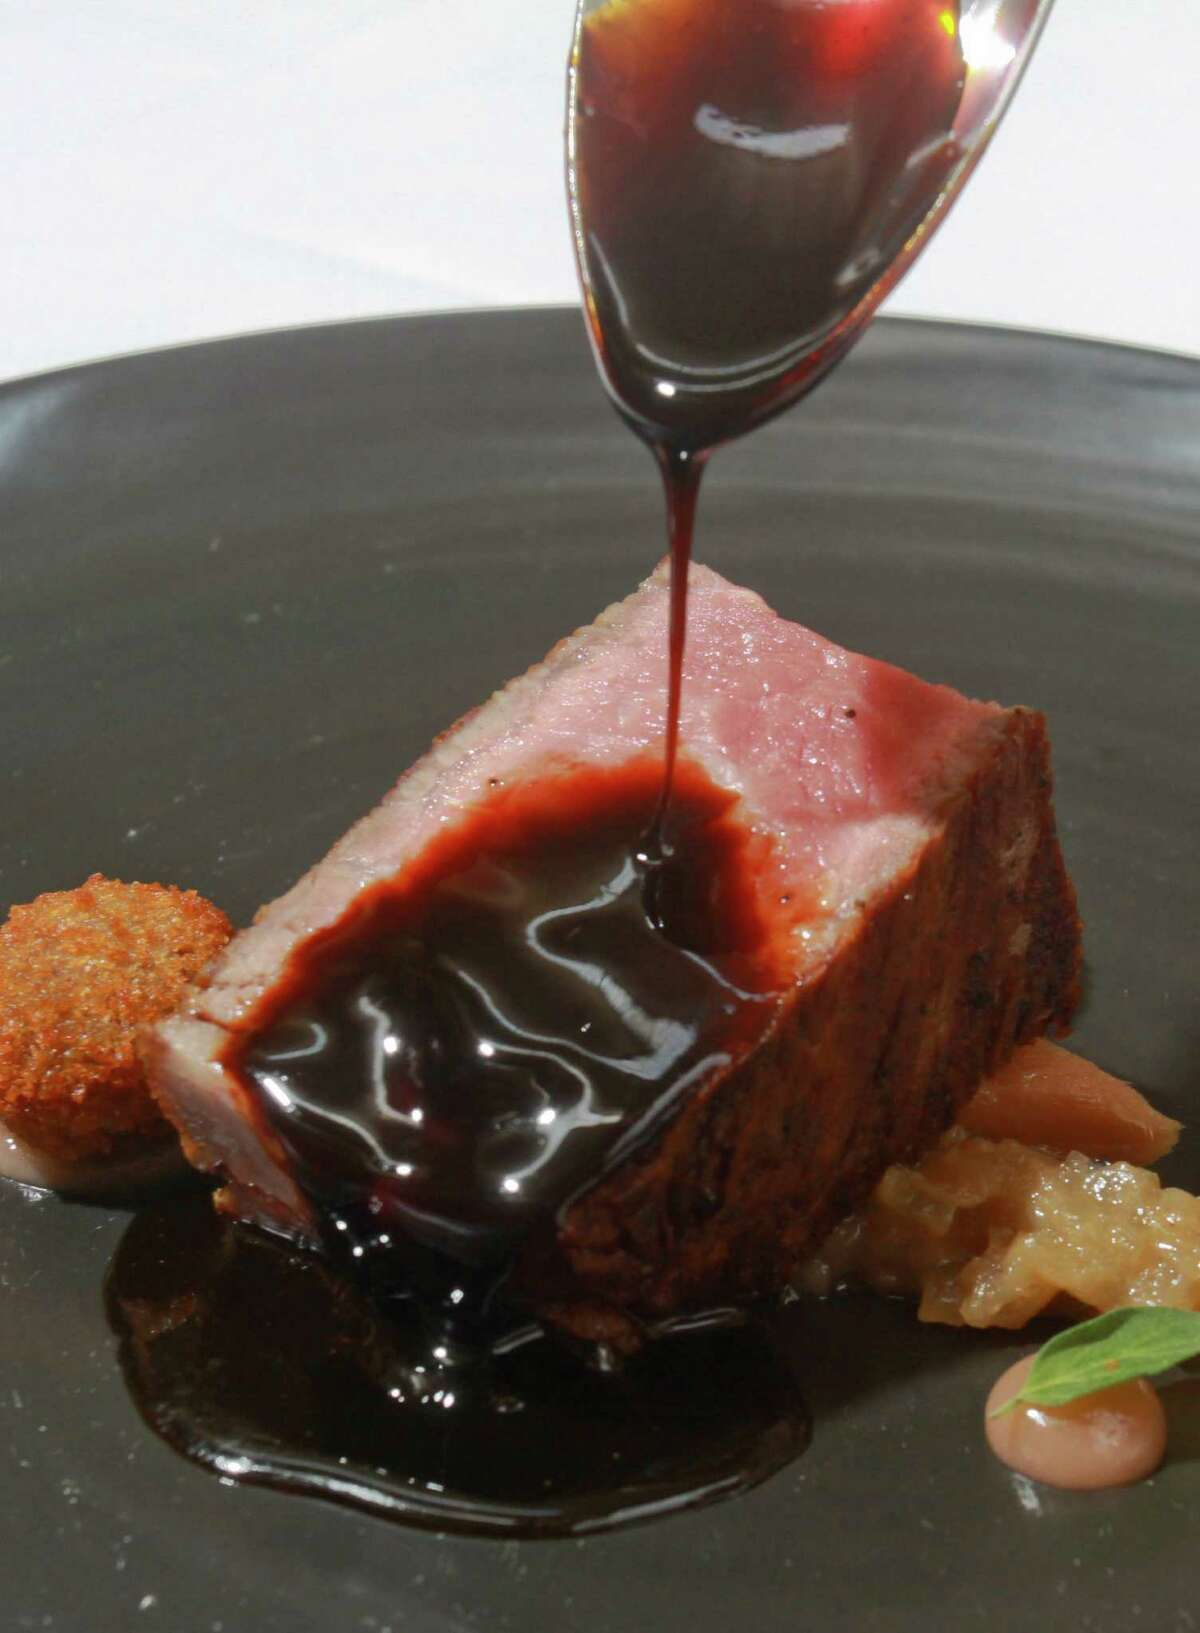 Bistecca with Rhubarb, and Balsamic Beef Jus added at table side, prepared by chef Grant Gordan at Tony's.